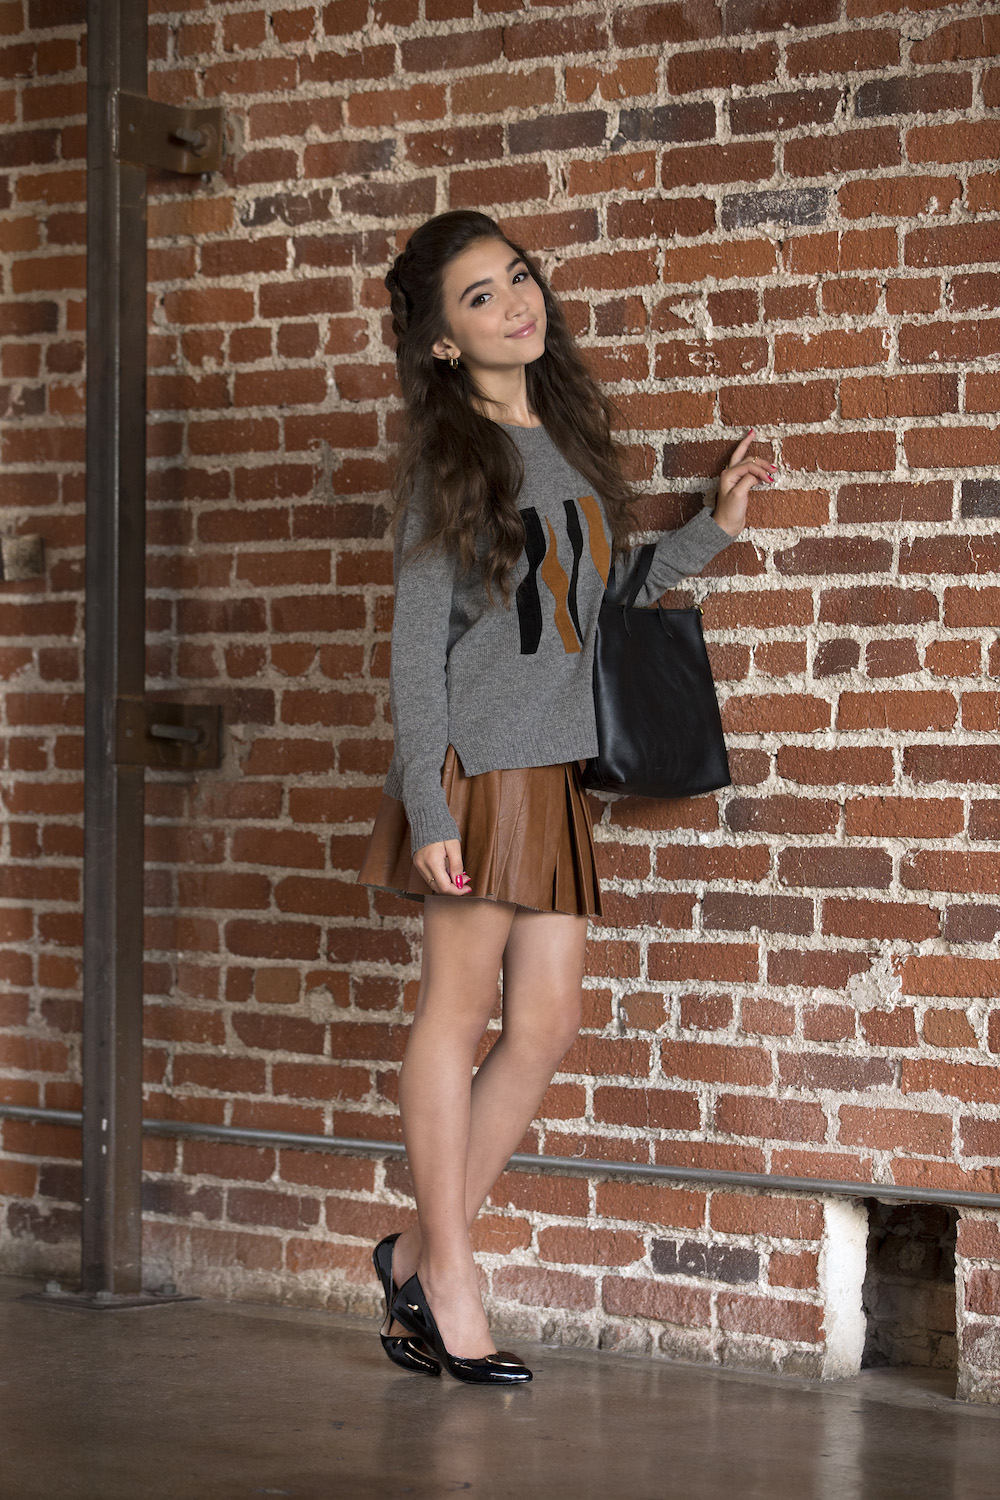 rowan blanchard youtube